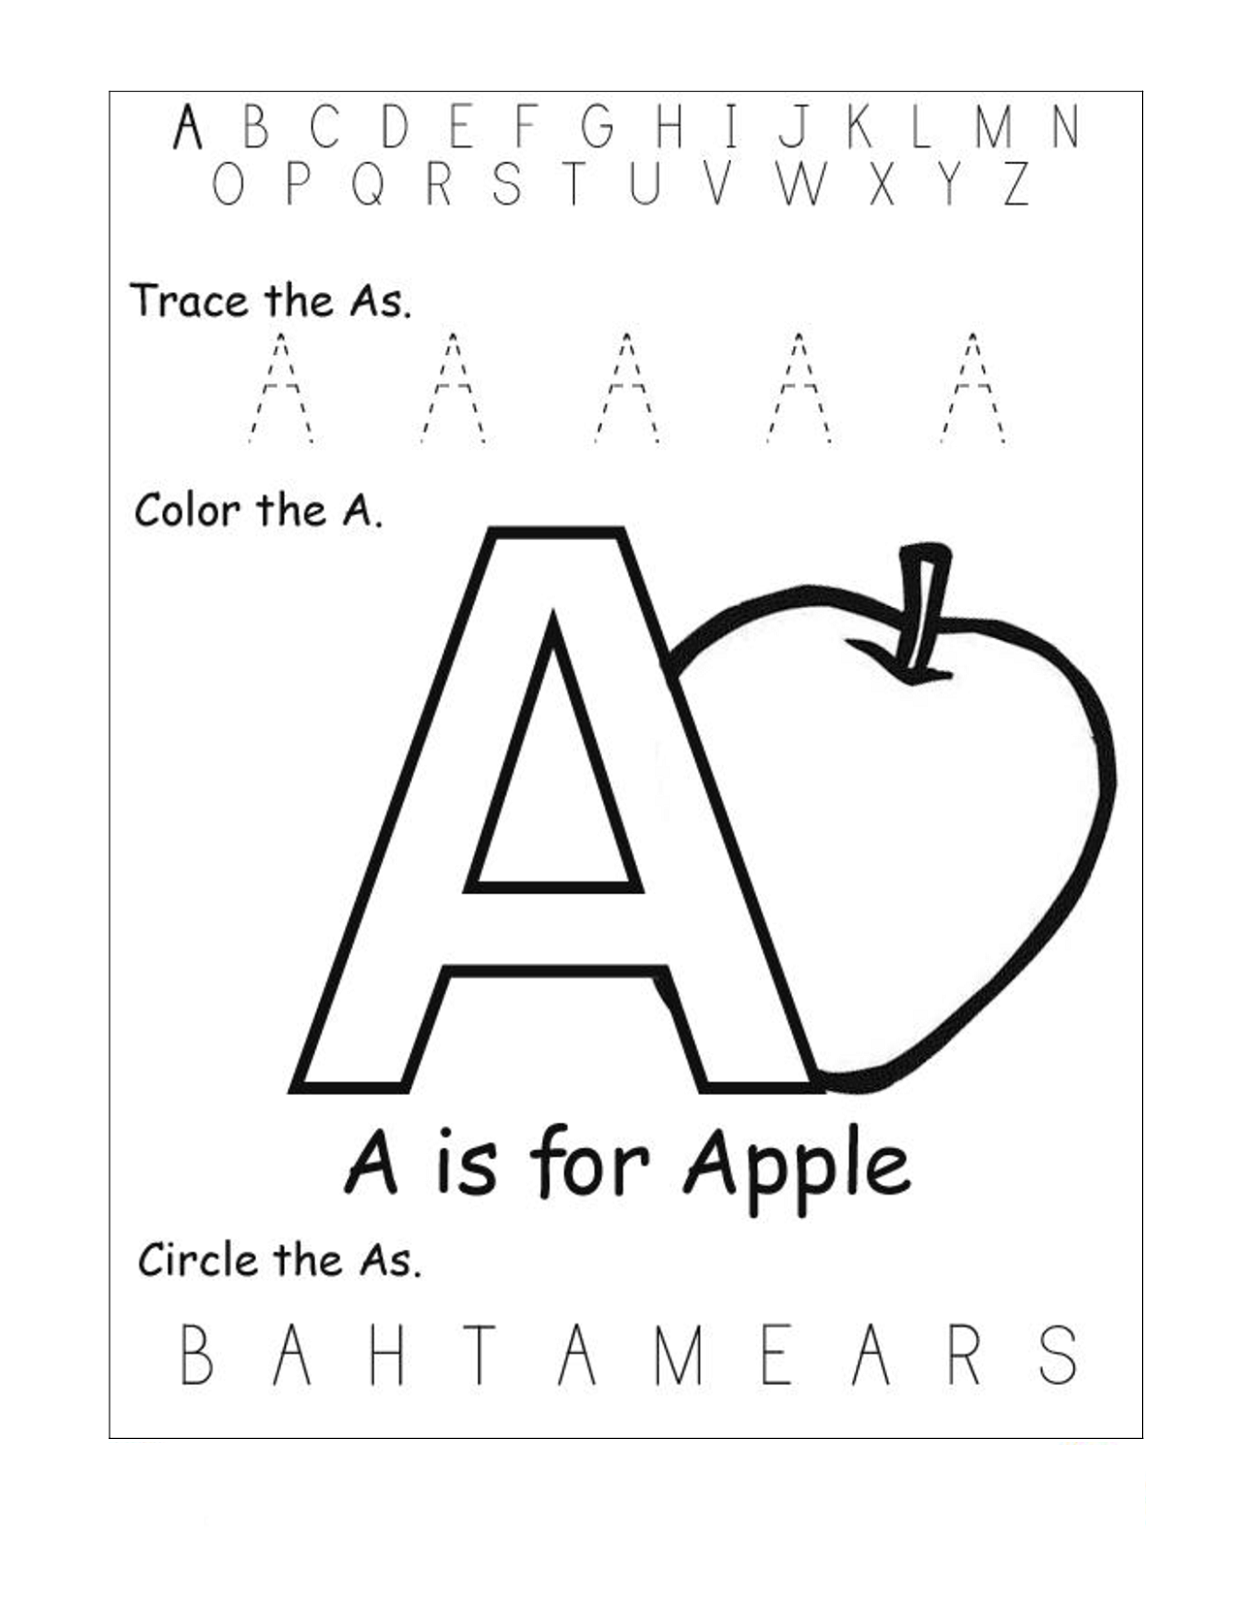 ABC Worksheets - Letter J - Alphabet Worksheets | A Wellspring